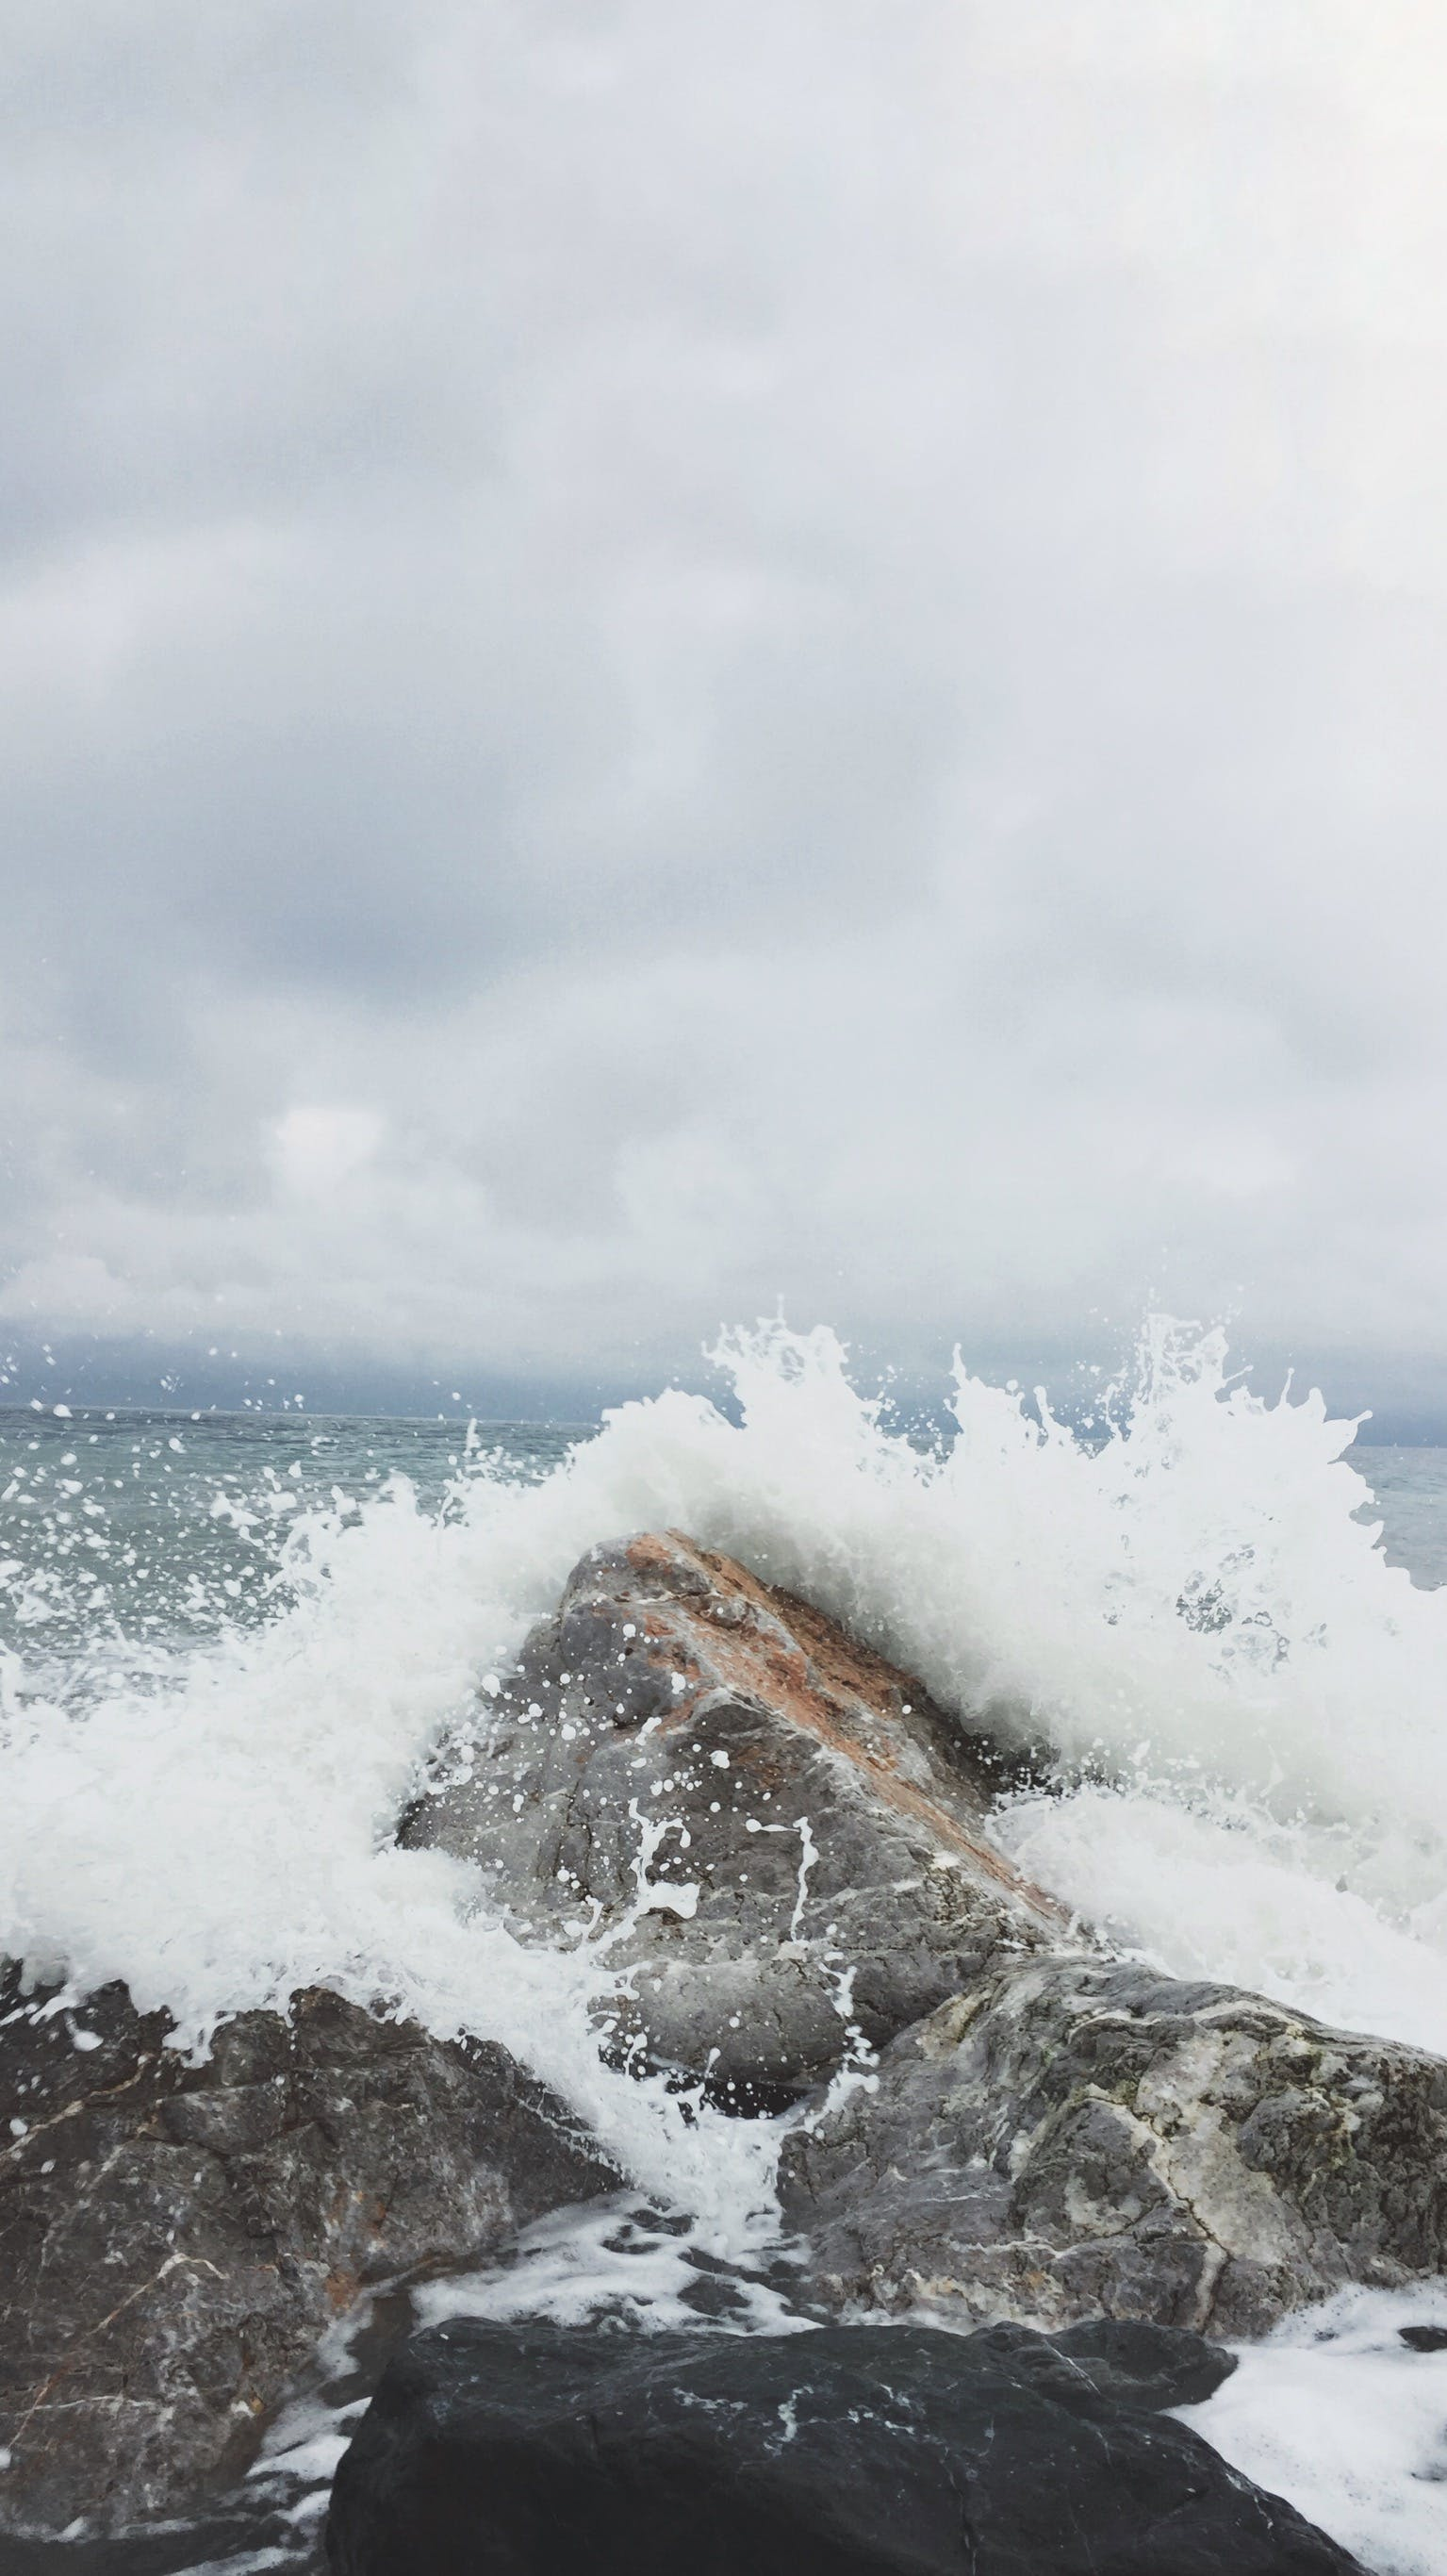 Person Taking Photo of Sea Waves and Gray Concrete Rock